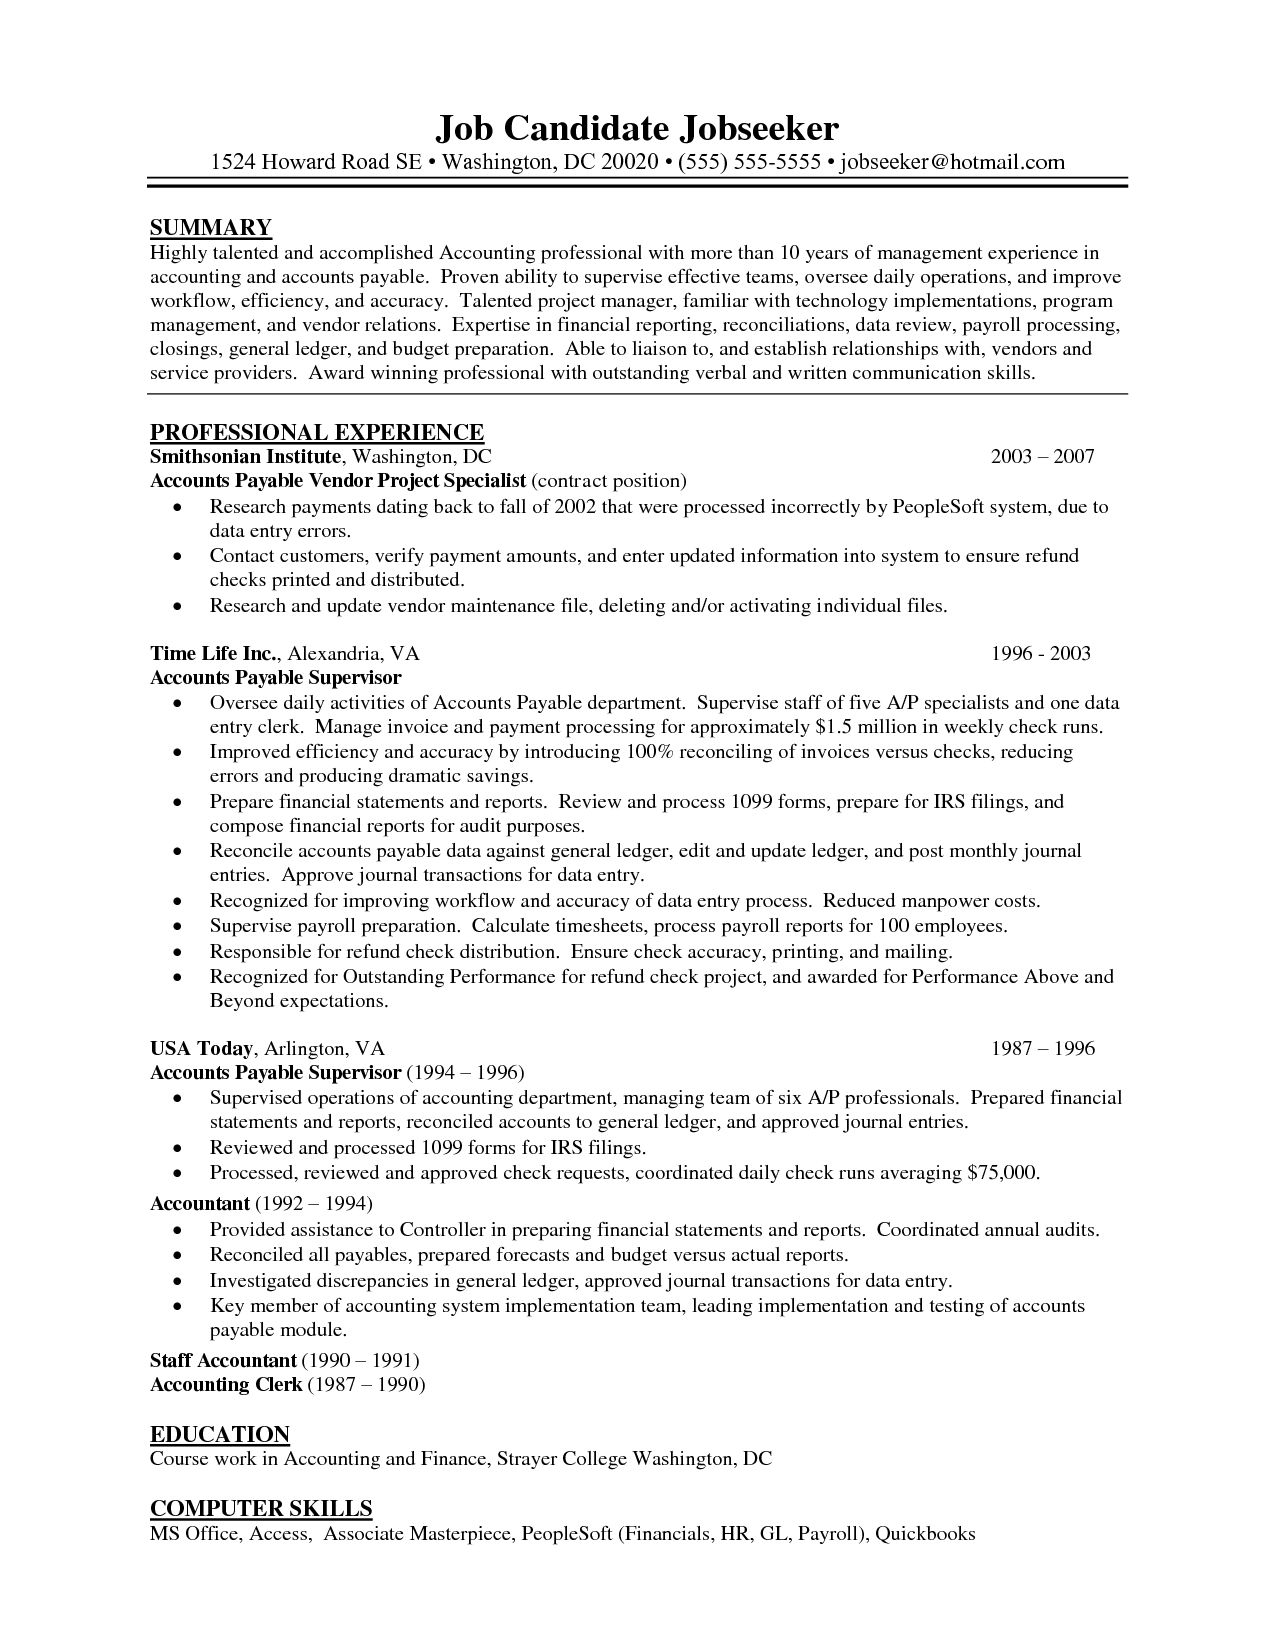 Accounts Payable And Receivable Resume Endearing Resume Examples Accounts Payable  Pinterest  Resume Examples